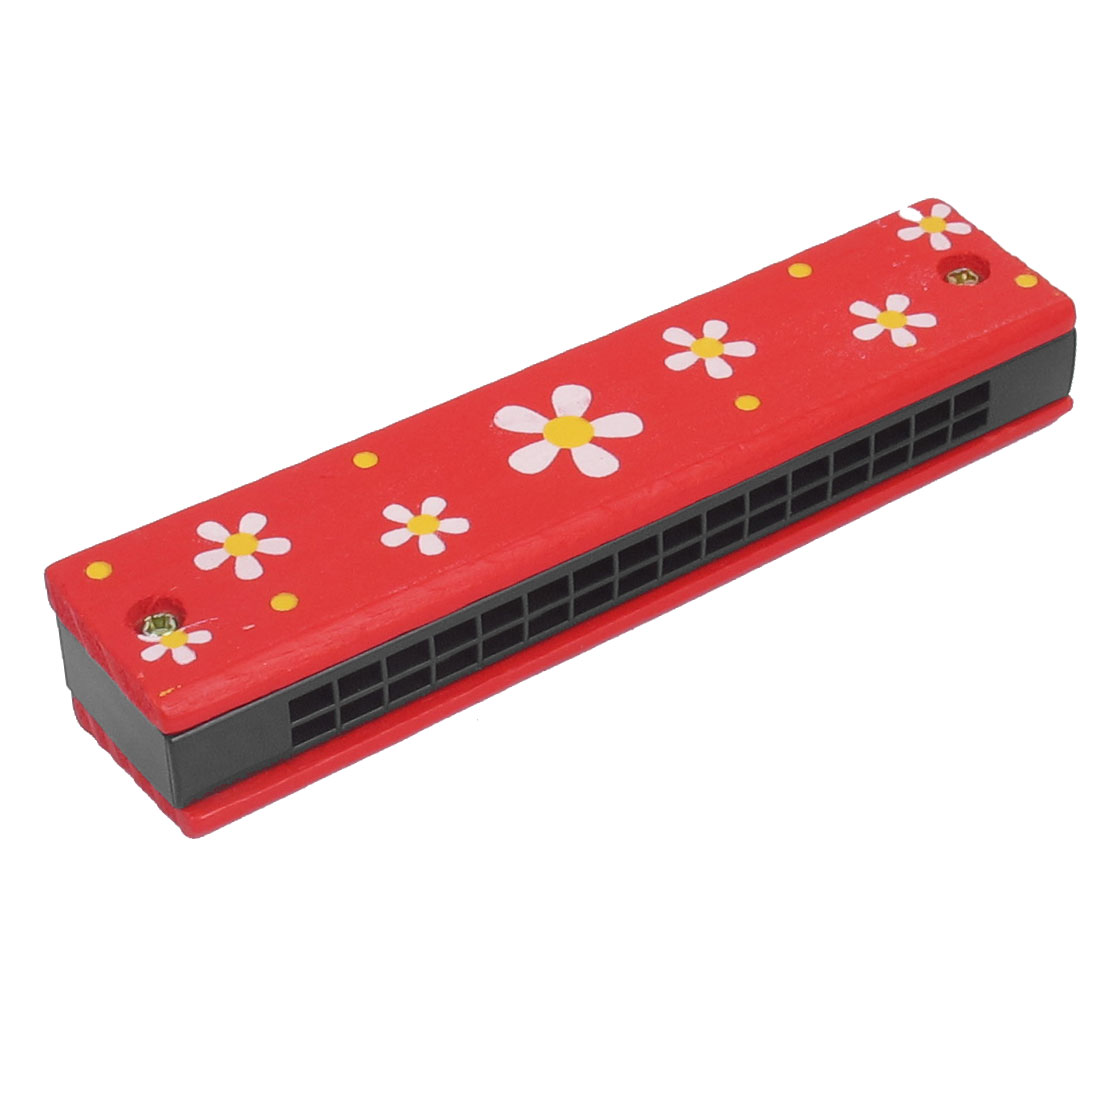 Wooden Harmonica Mouth Organ w Dual Rows 32 Holes Red Floral Pattern Educational Toy for Children